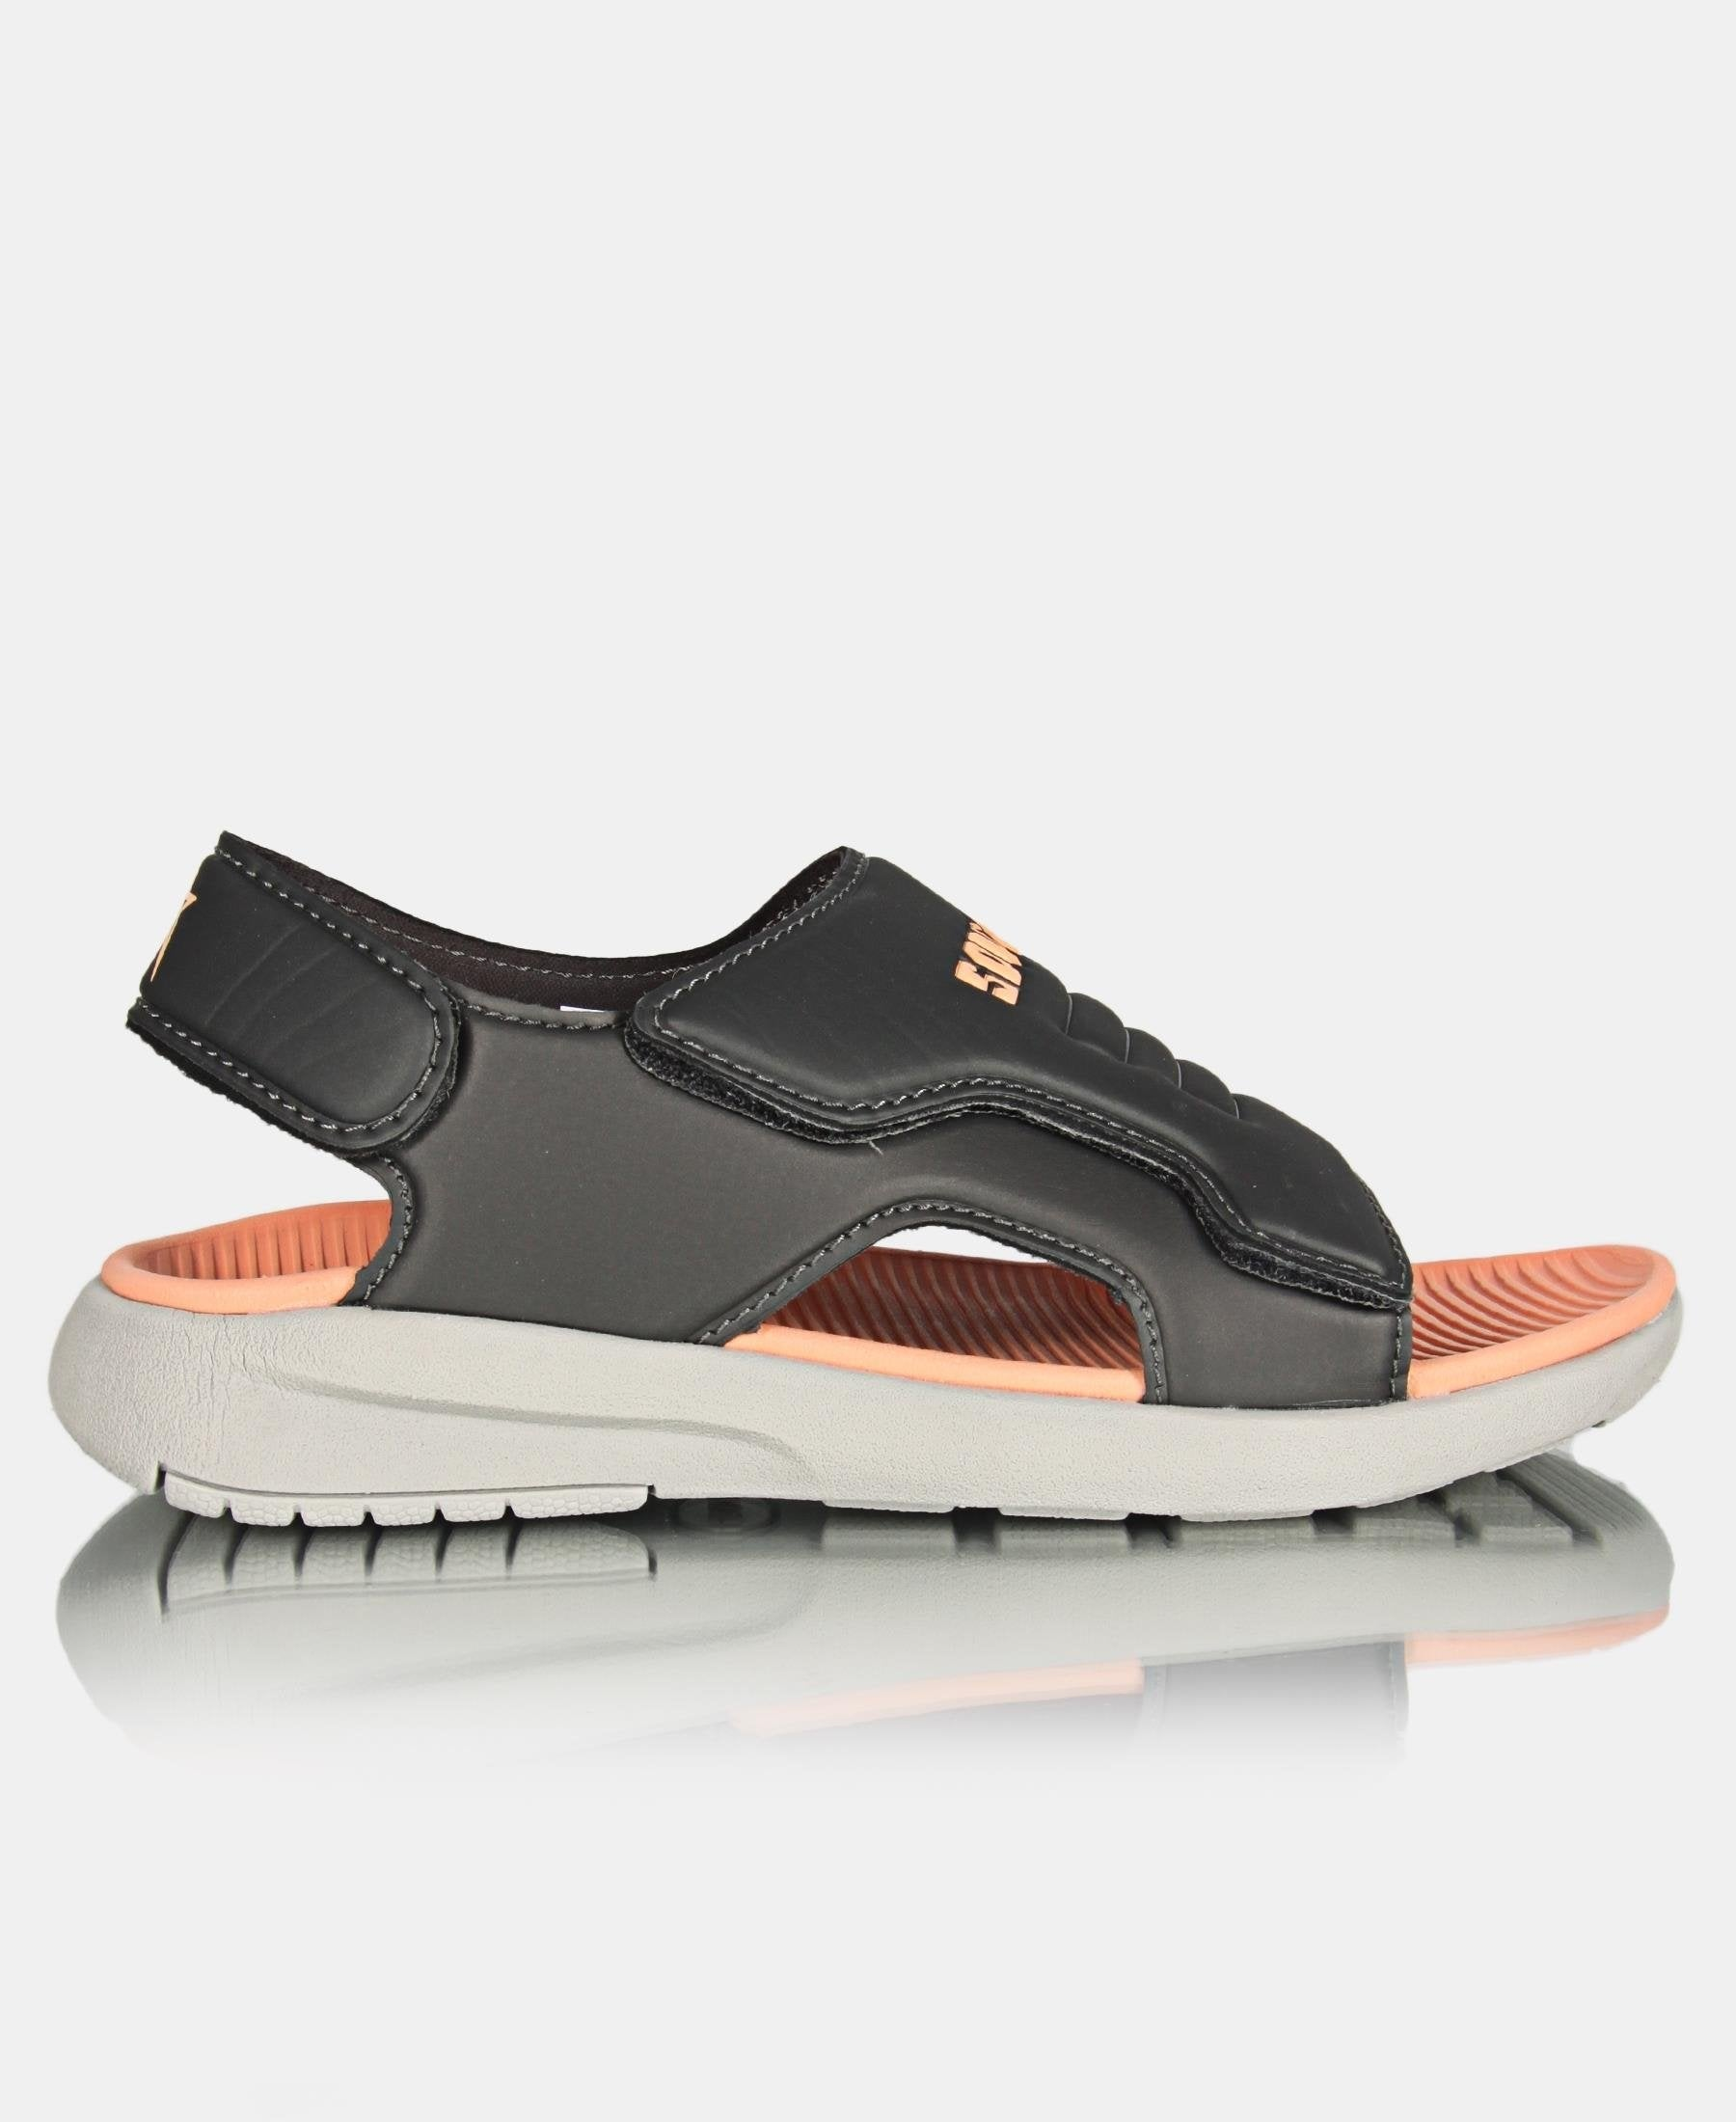 Youth Parker Sandals - Grey